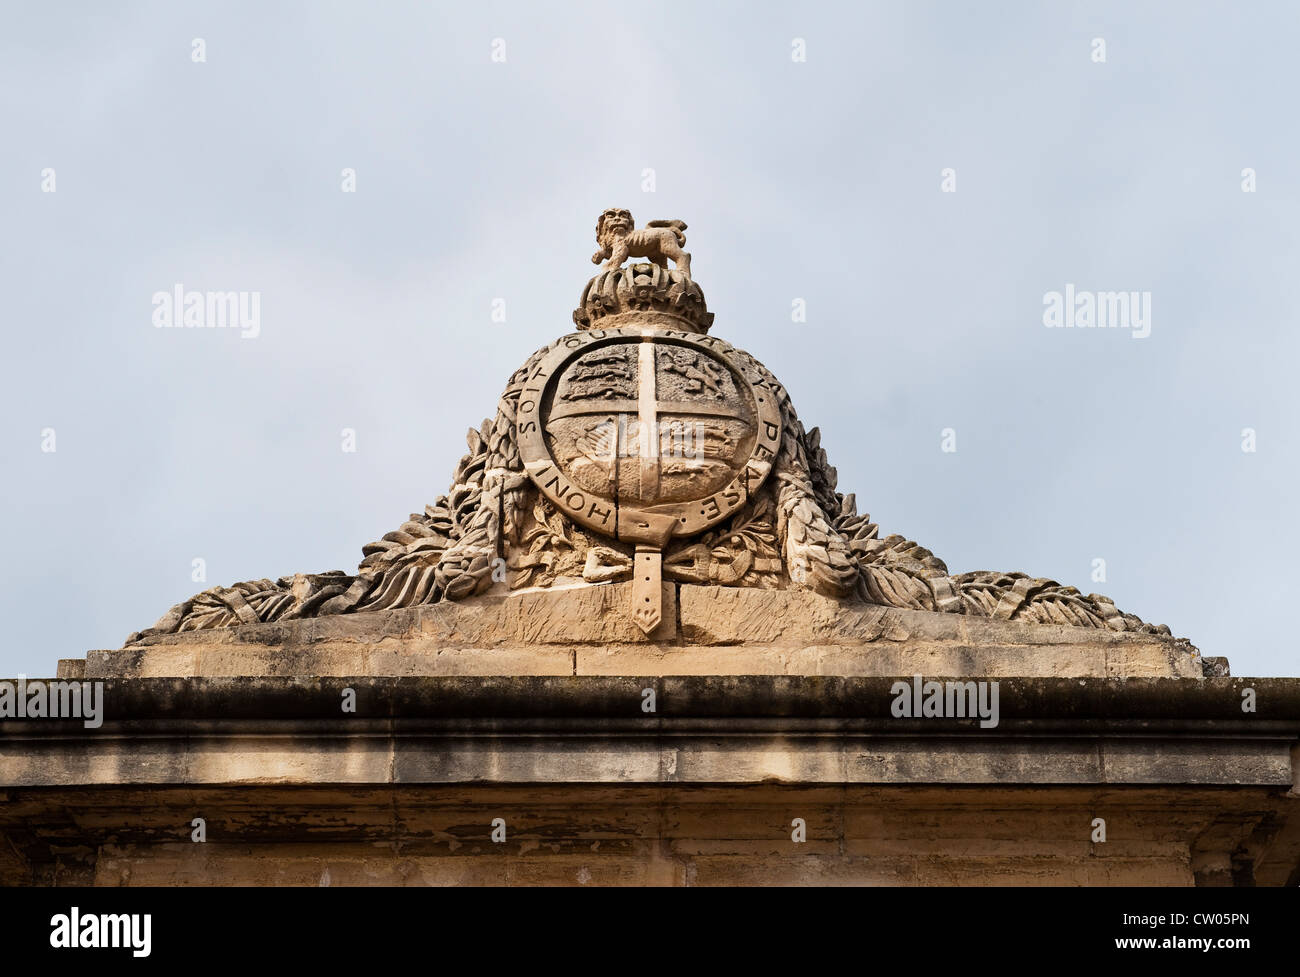 Floriana, Valletta, Malta. The royal crest at the entrance to the Maglio Gardens (the Mall Gardens) - Stock Image